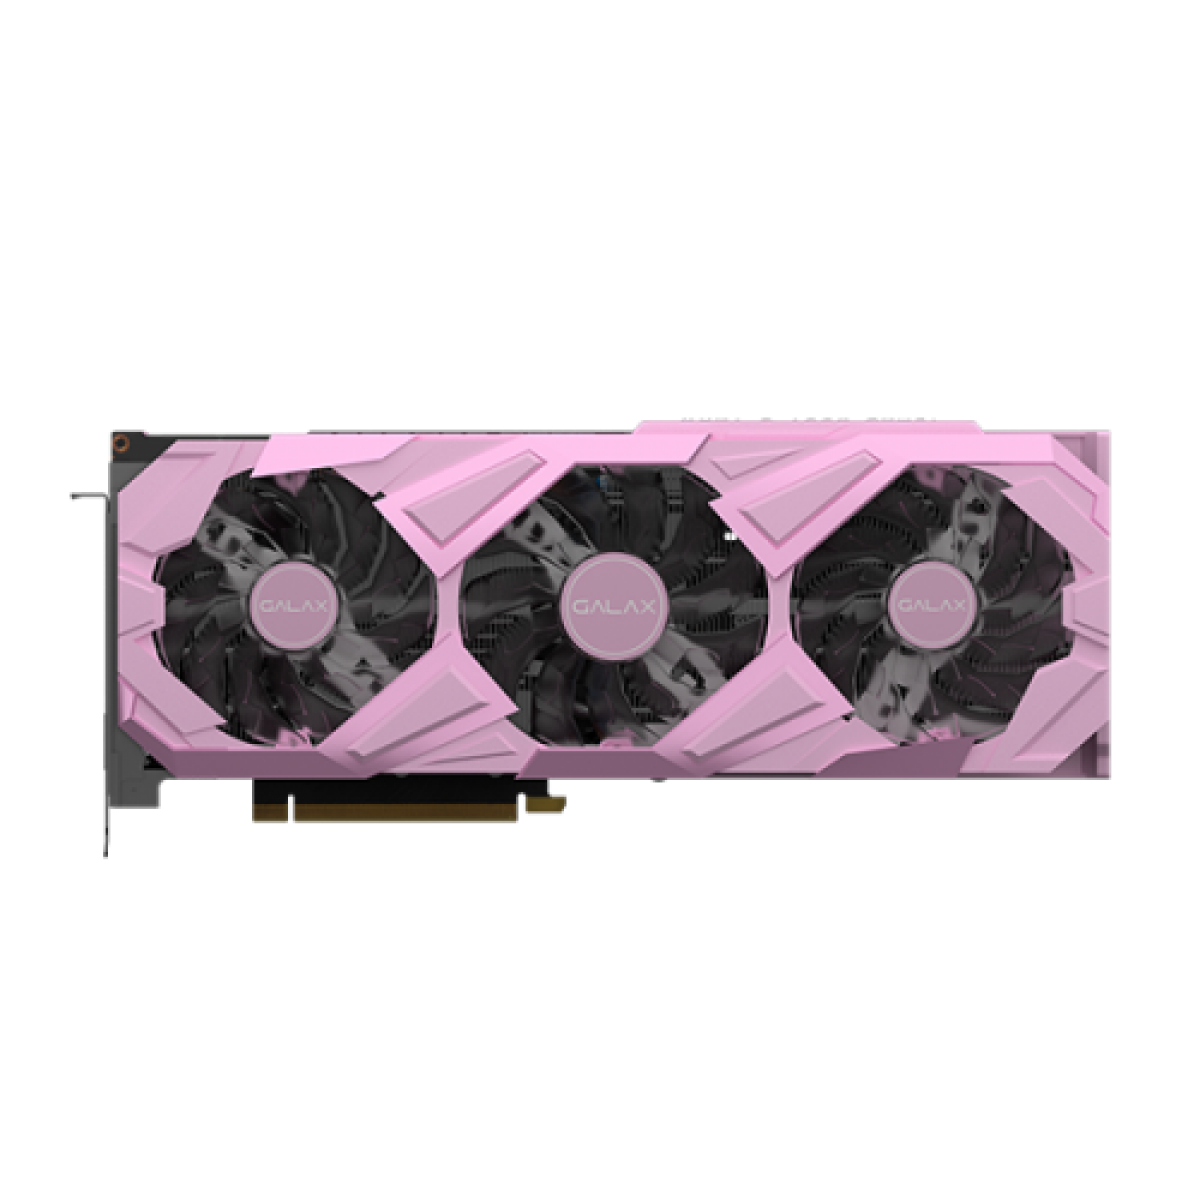 Placa de Vídeo Galax, GeForce, RTX 3080 EX Gaming Pink, 1 Click OC, 10GB, GDDR6X, 320Bit,